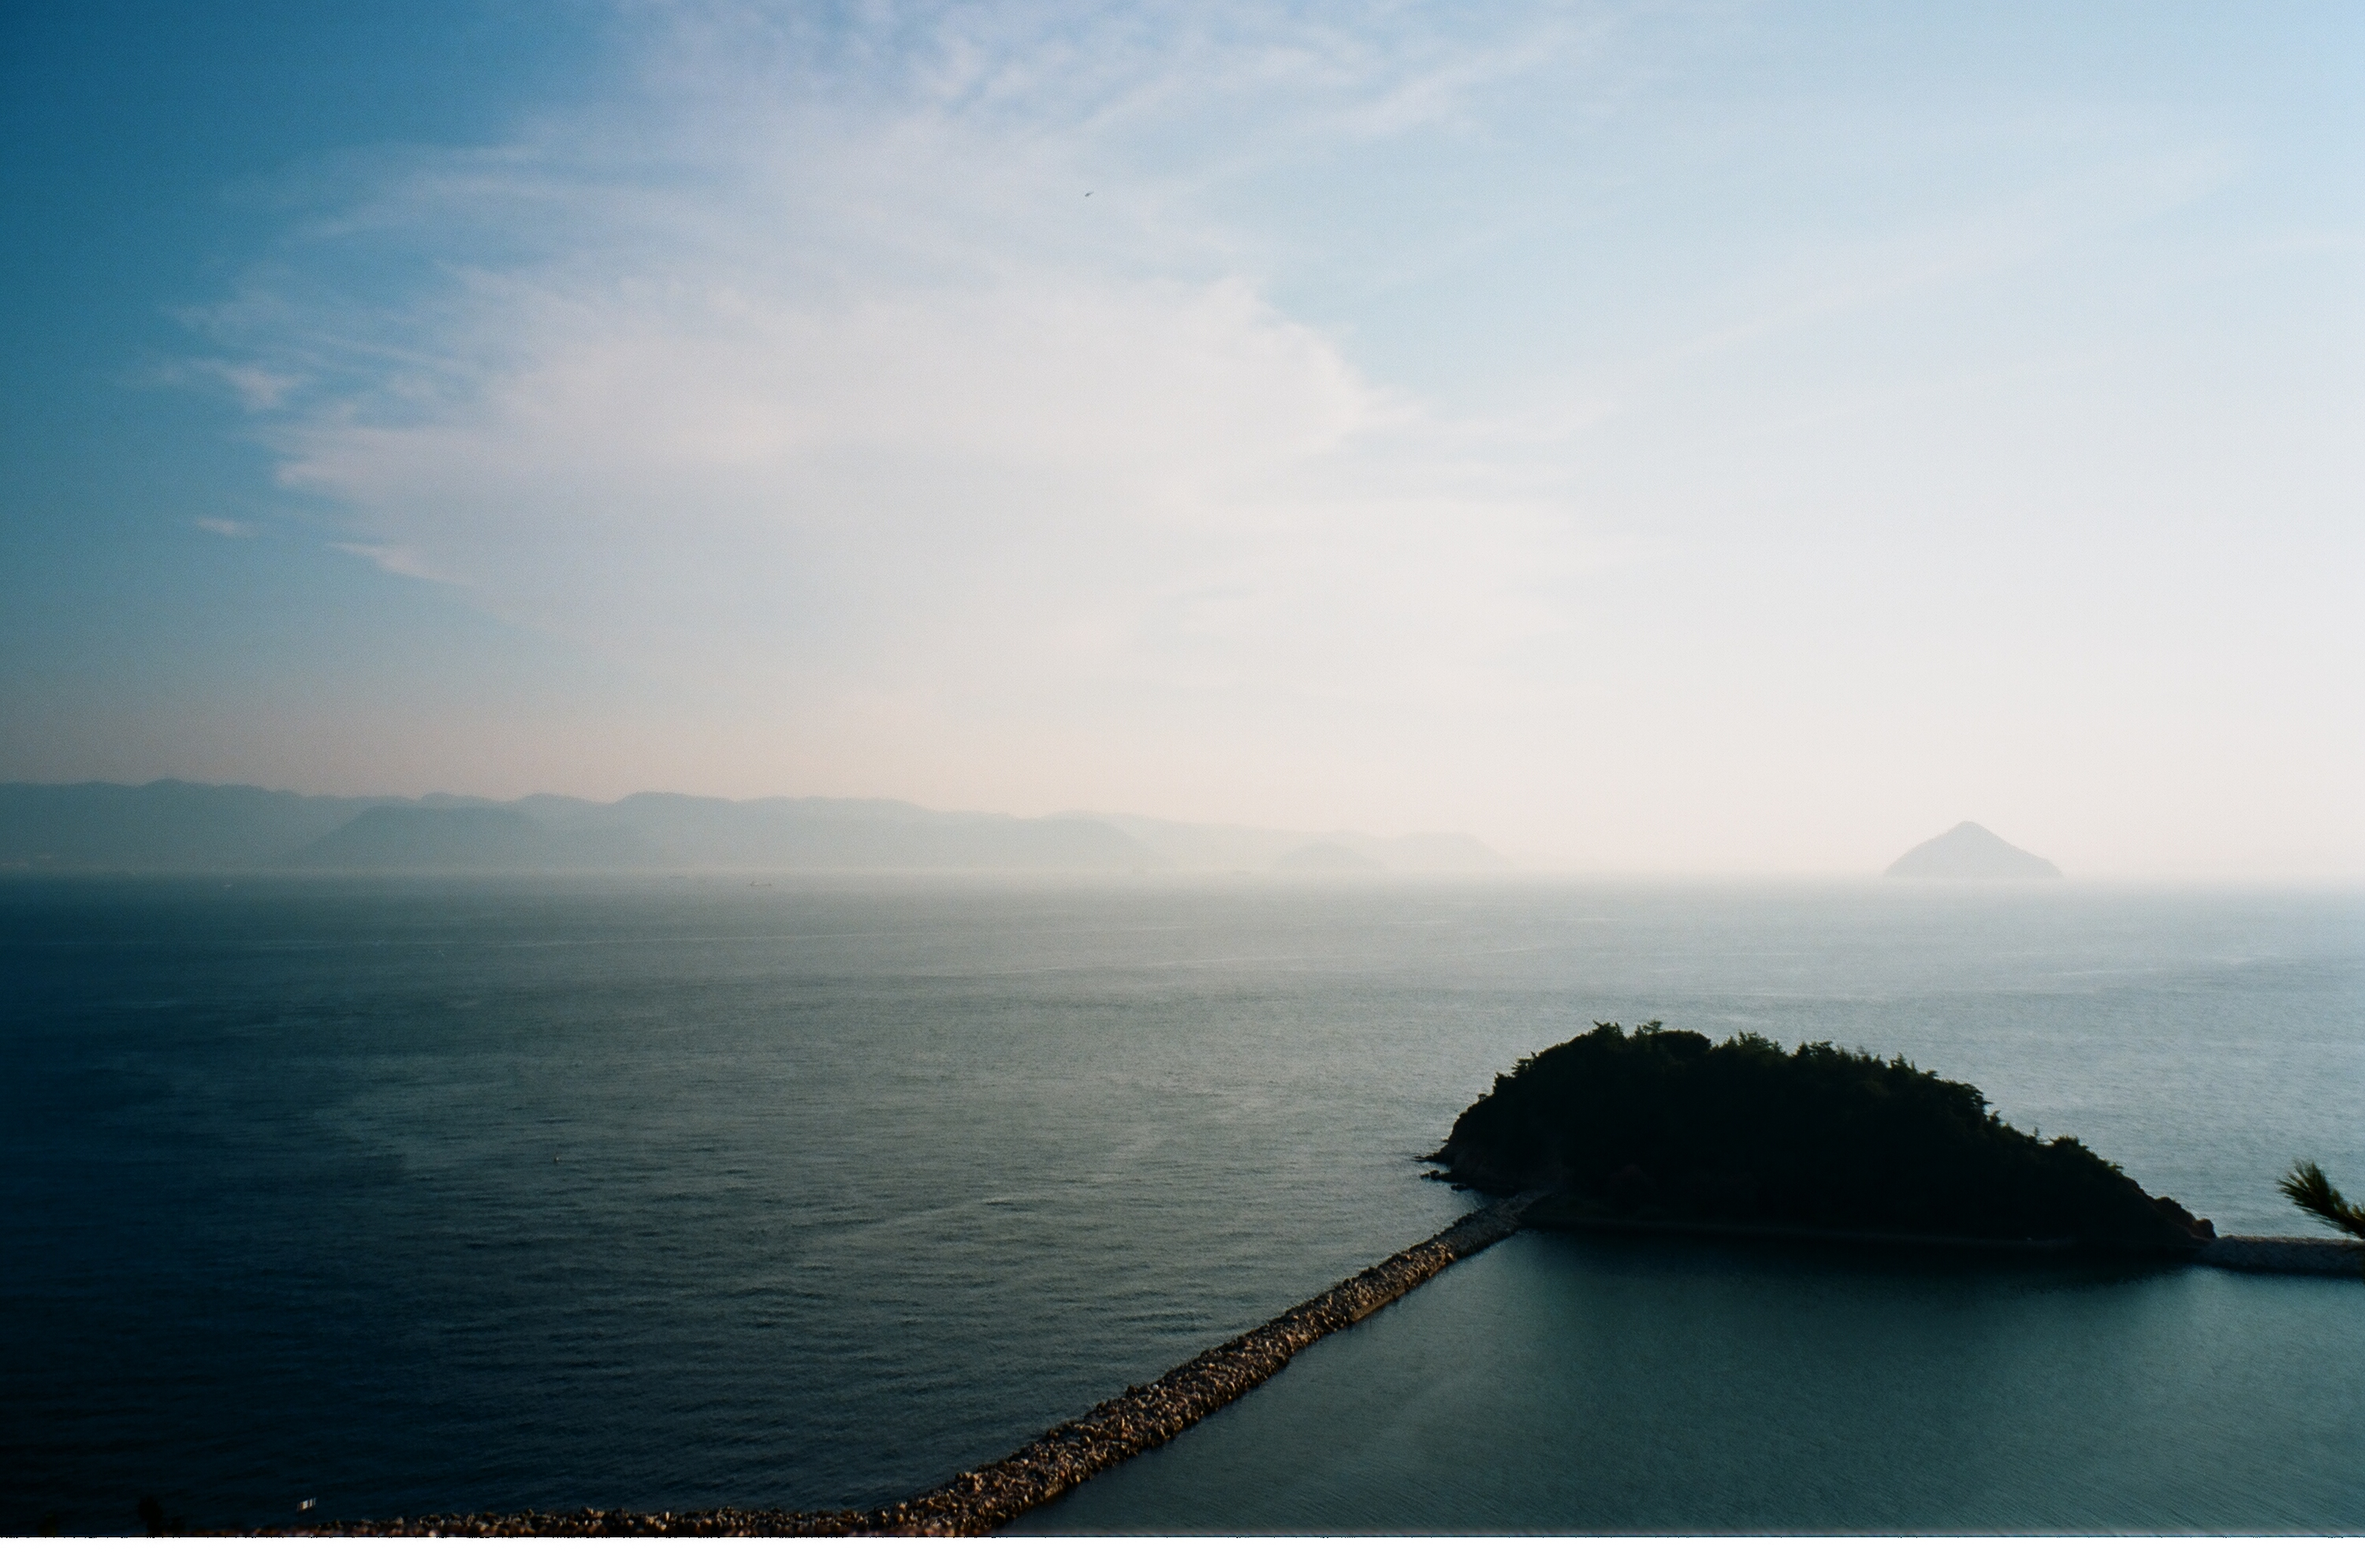 Seascape from Naoshima. Photo by Chiu Heiyan.